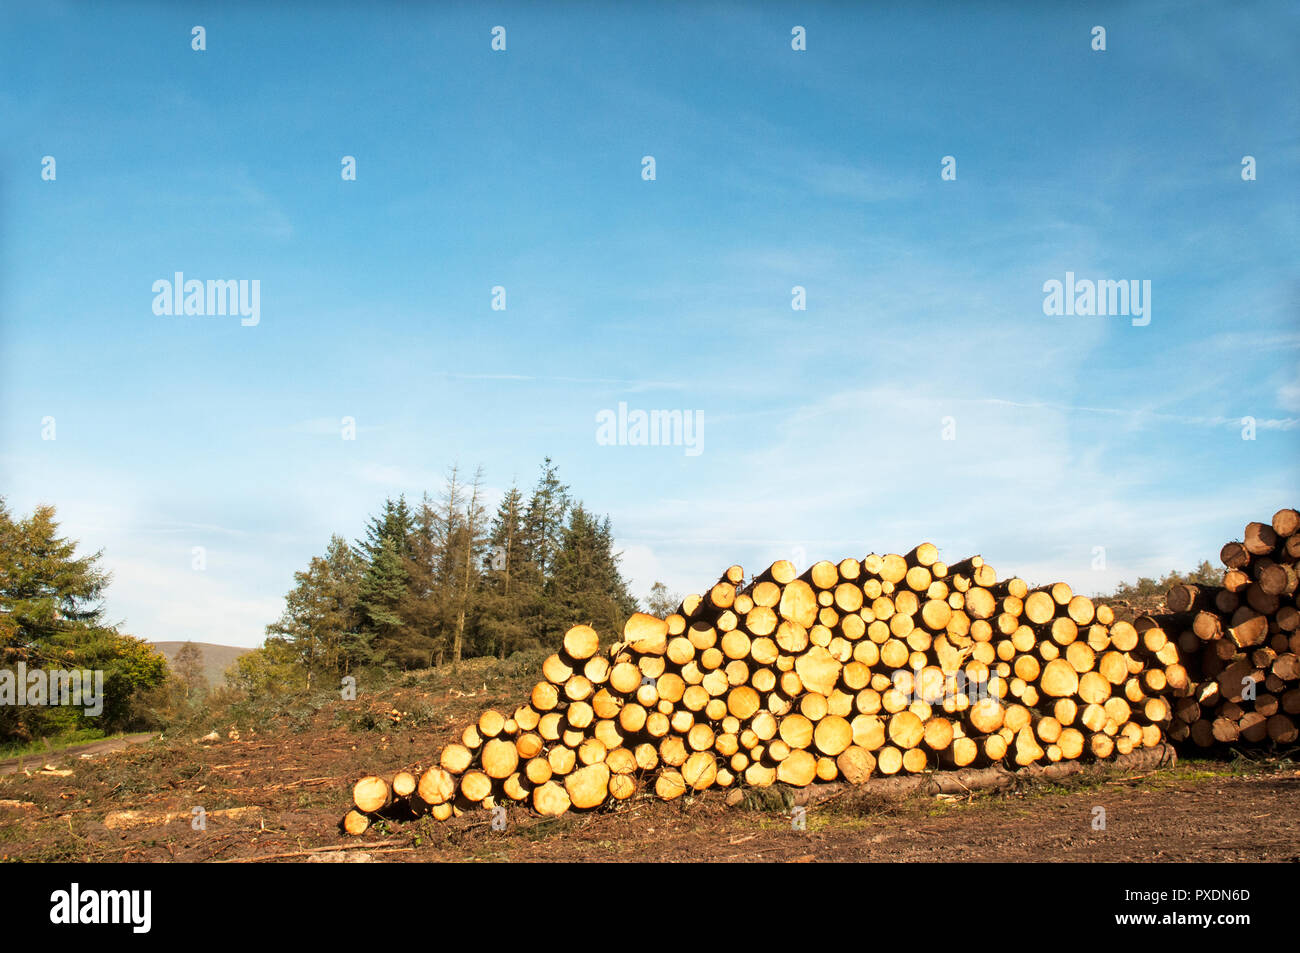 Stacks of cut up tree trunks after being felled due to being unsafe after lots of high winds. Will be recycled into other projects within the park. - Stock Image